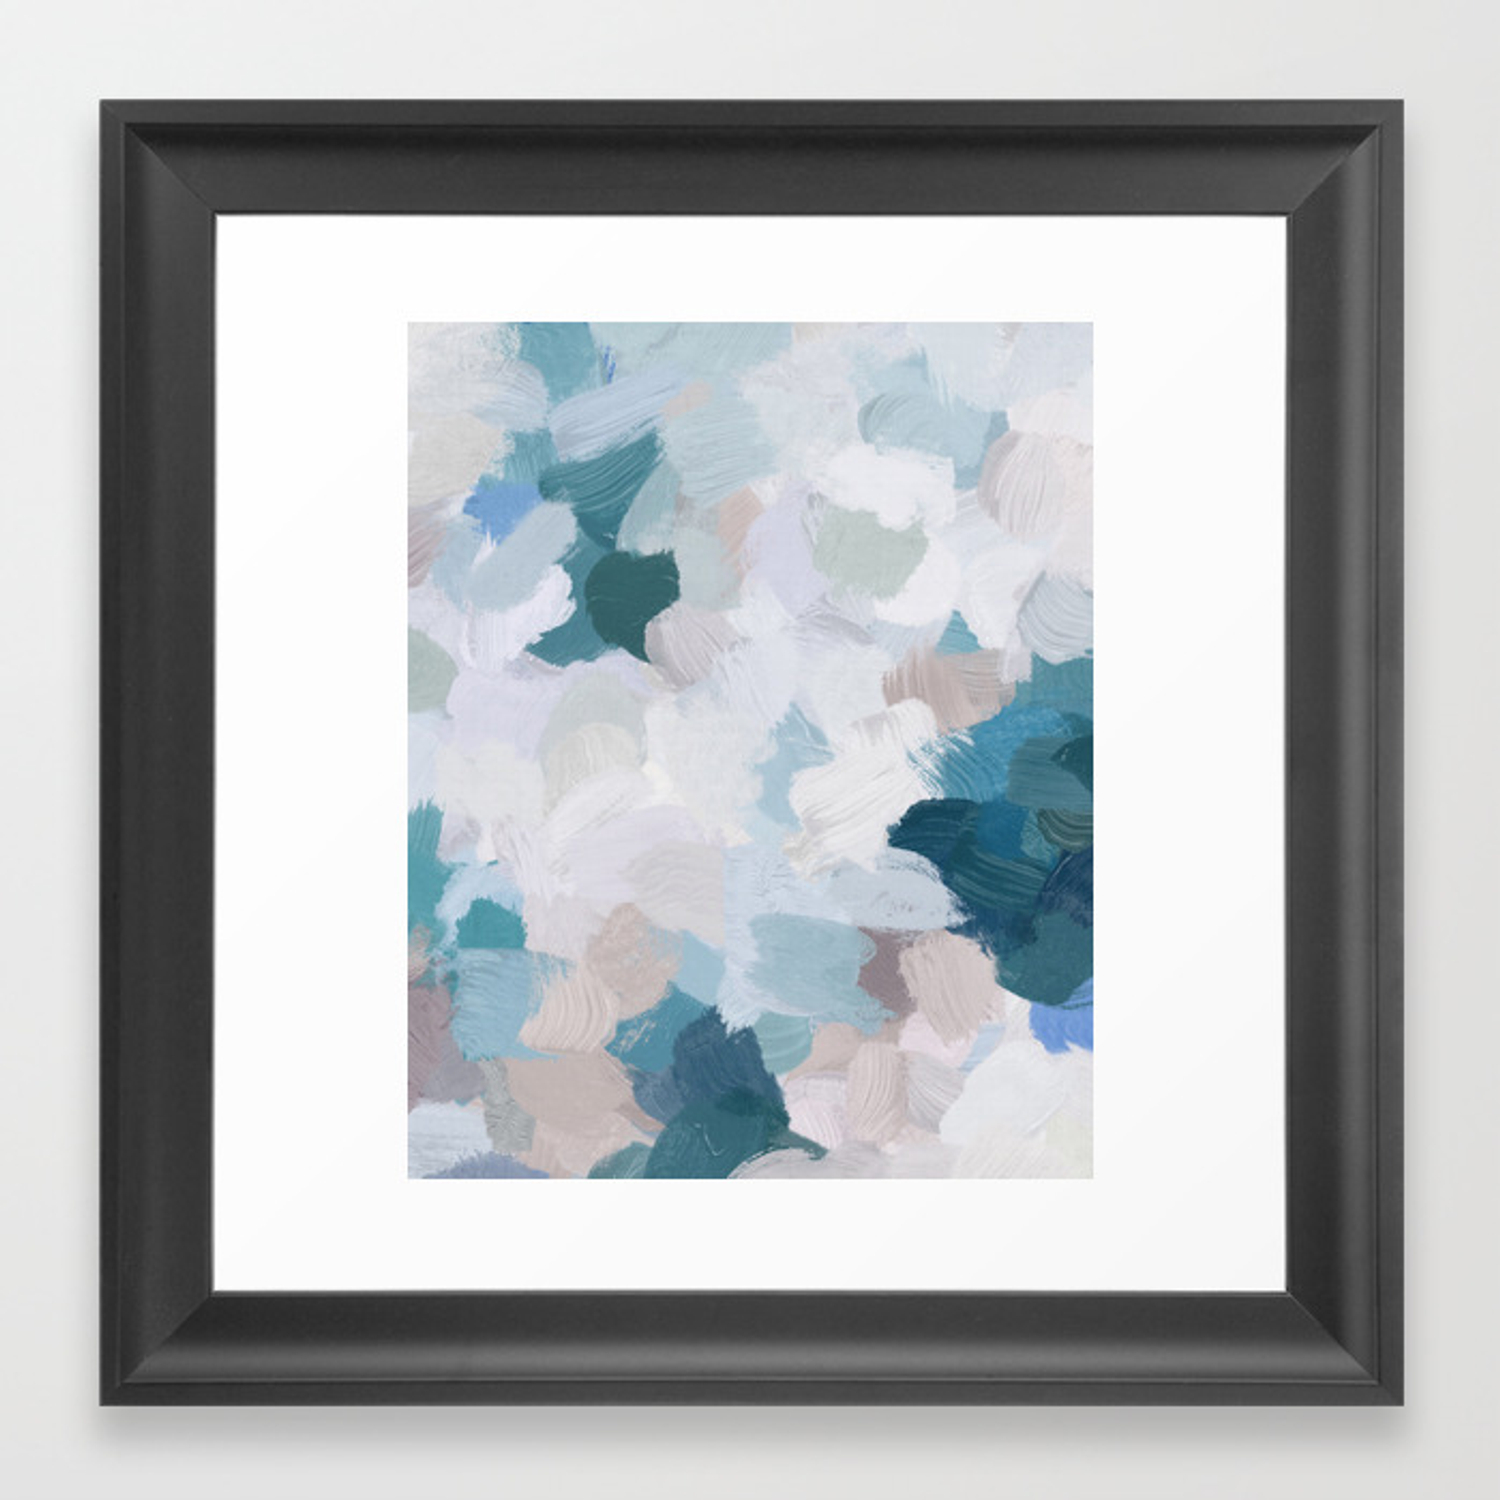 Turquoise navy blue blush pink gray white abstract painting modern wall art digital print framed art print